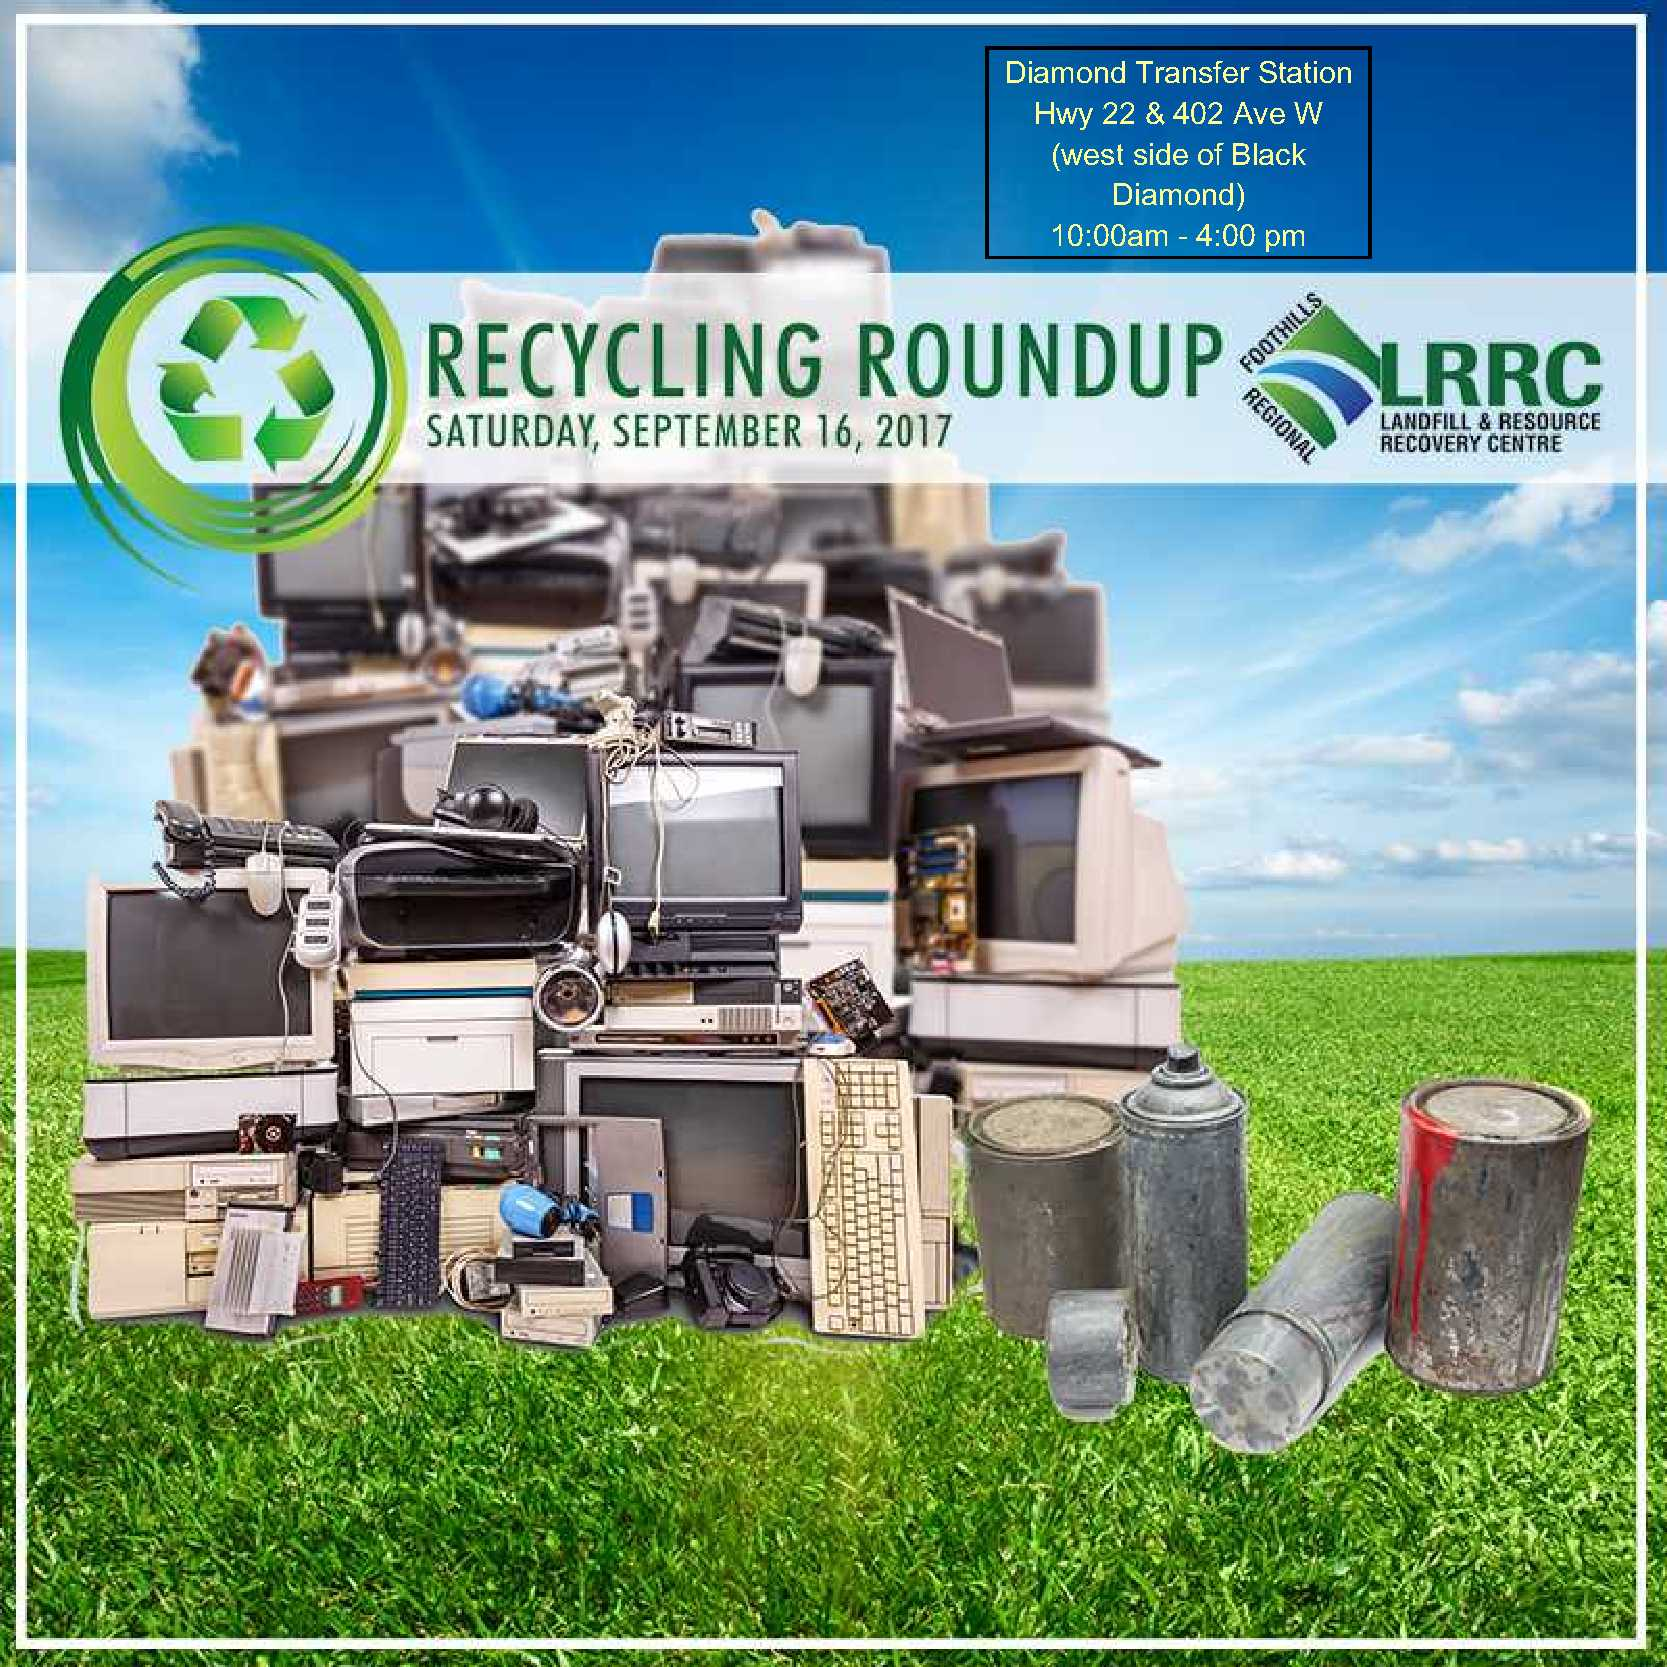 Recycling Round up